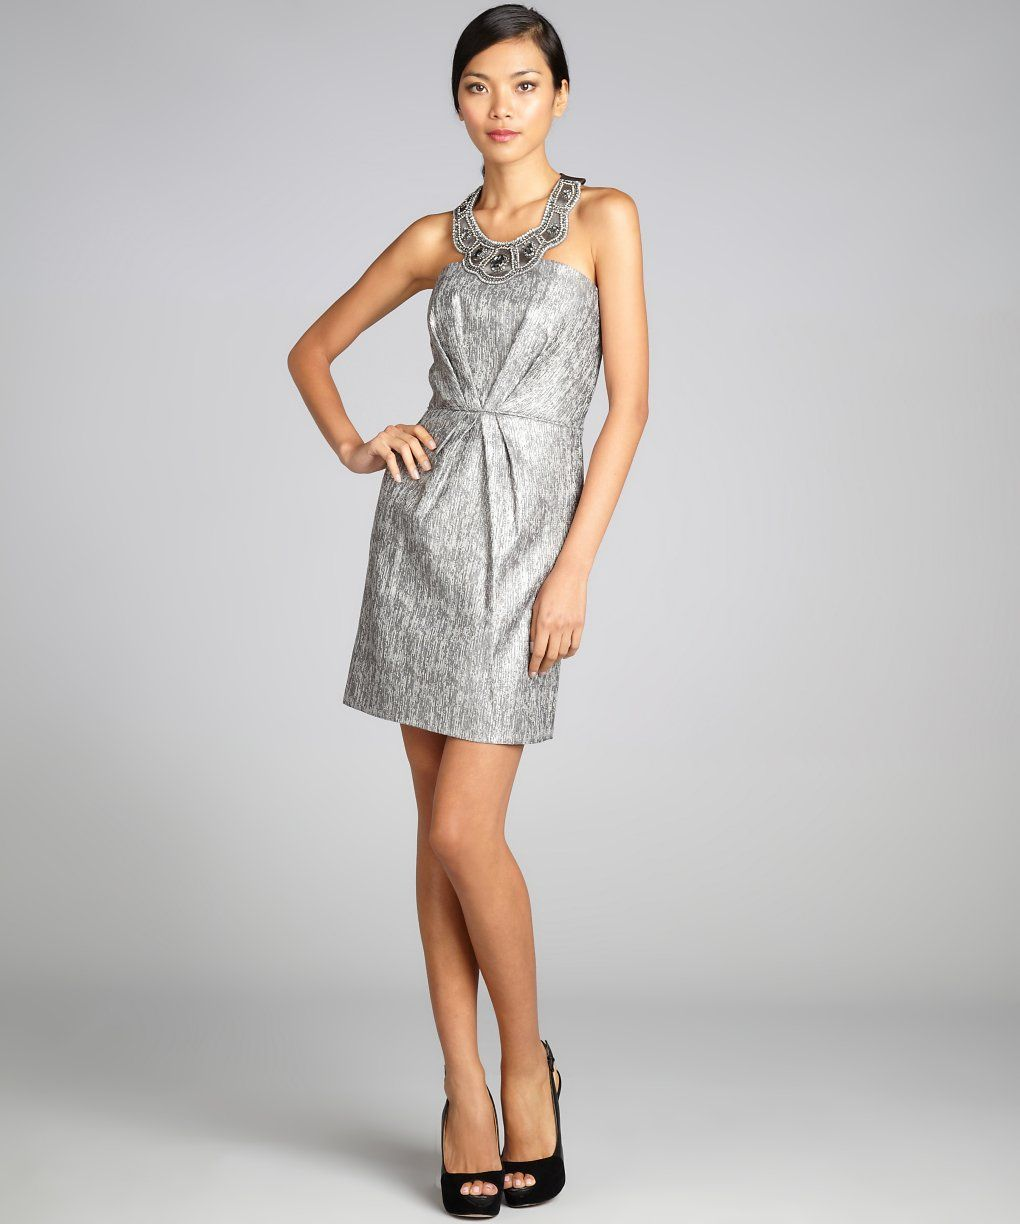 Laundry by shelli segal steel jeweled scalloped halter party dress